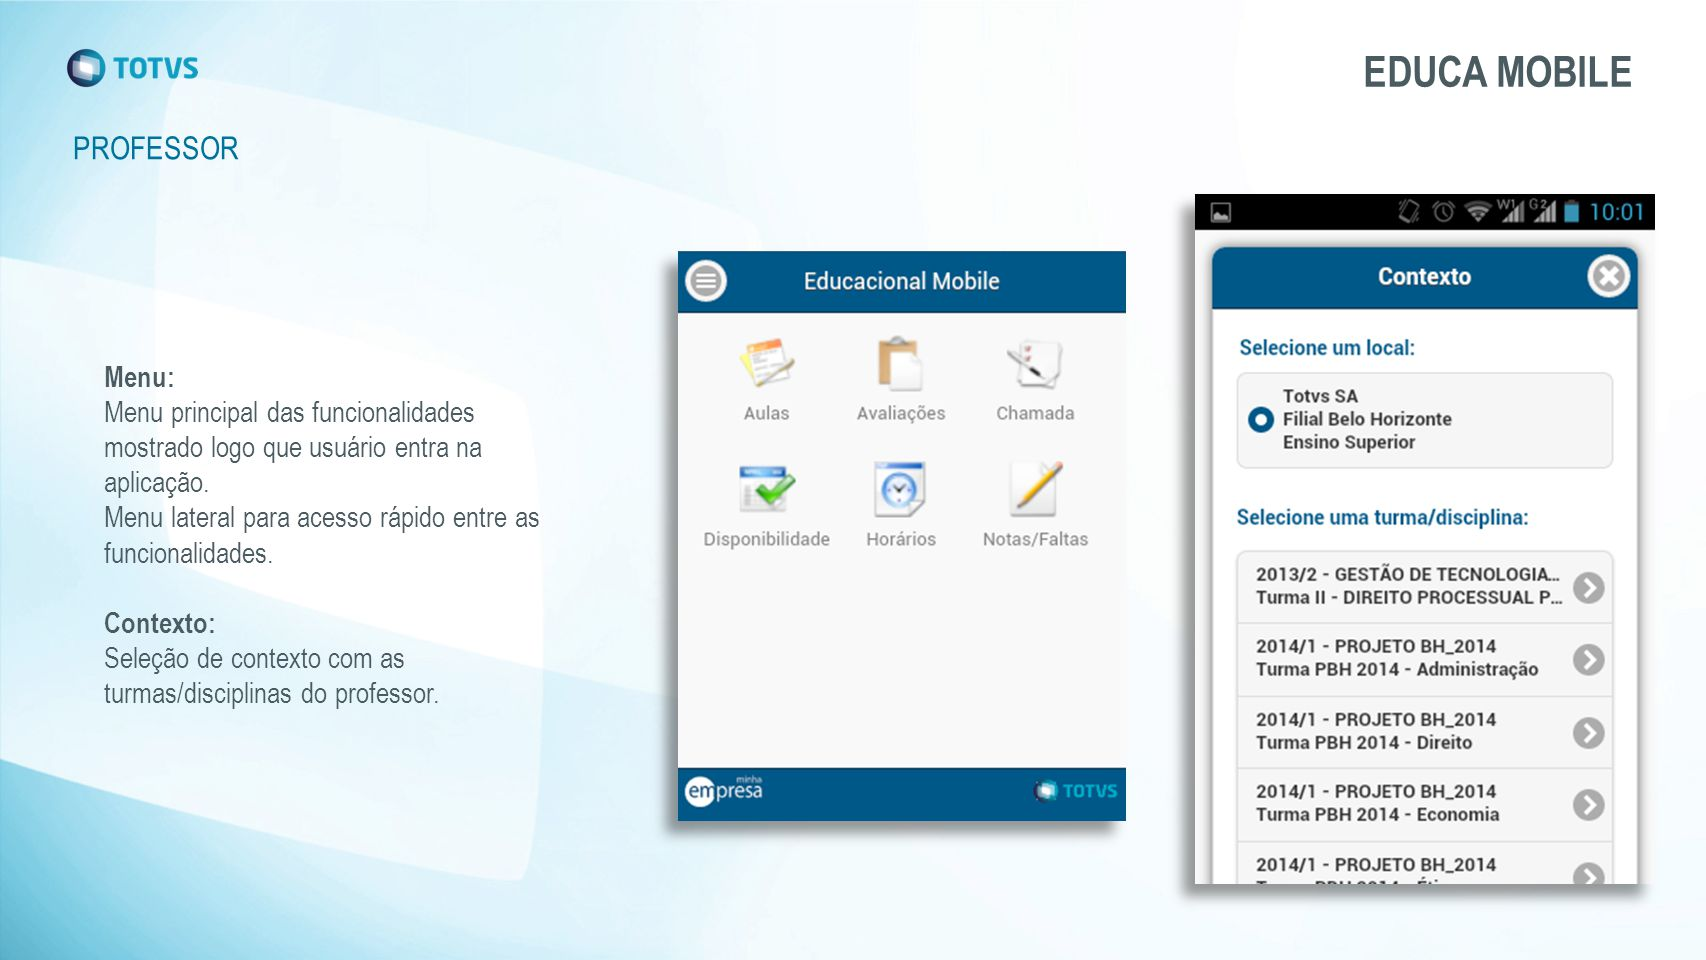 EDUCA MOBILE PROFESSOR Menu: